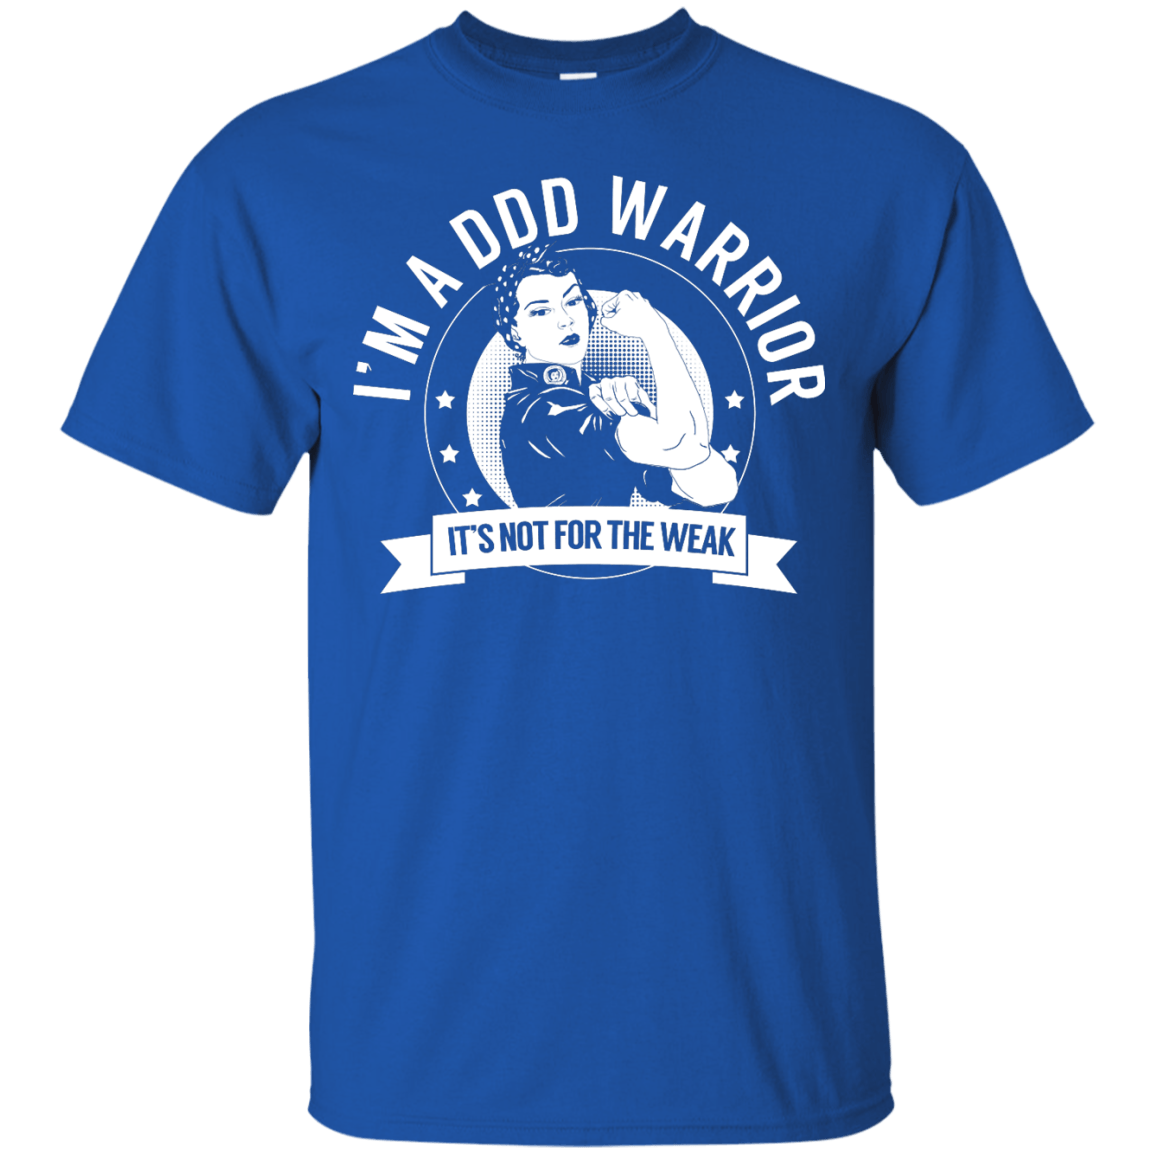 Degenerative Disc Disease - DDD Warrior Not for the Weak Unisex Shirt - The Unchargeables